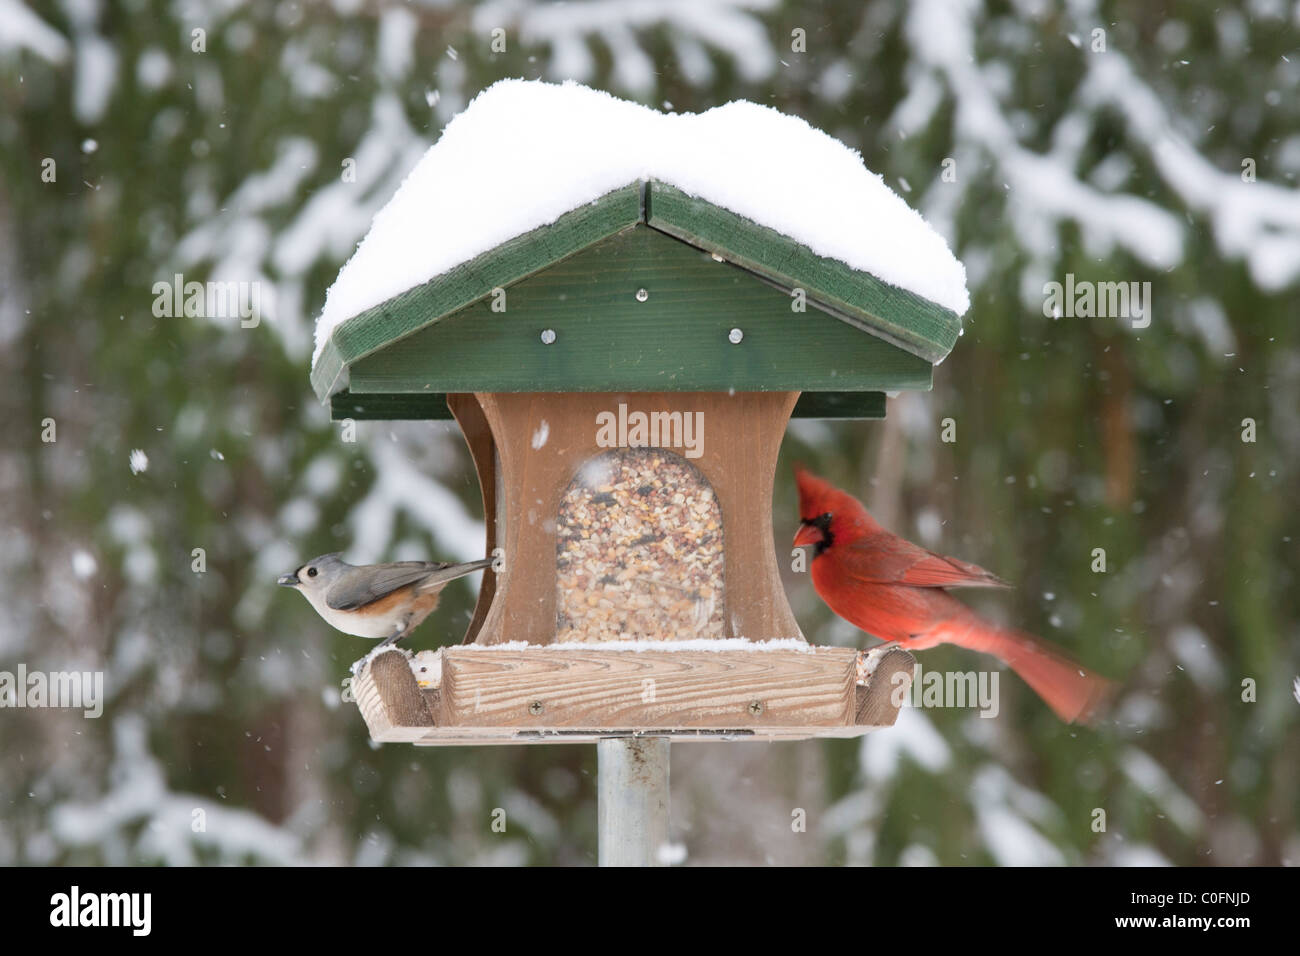 Northern Cardinal & Tufted Titmouse perched at Winter Bird Feeder with Snow - Stock Image